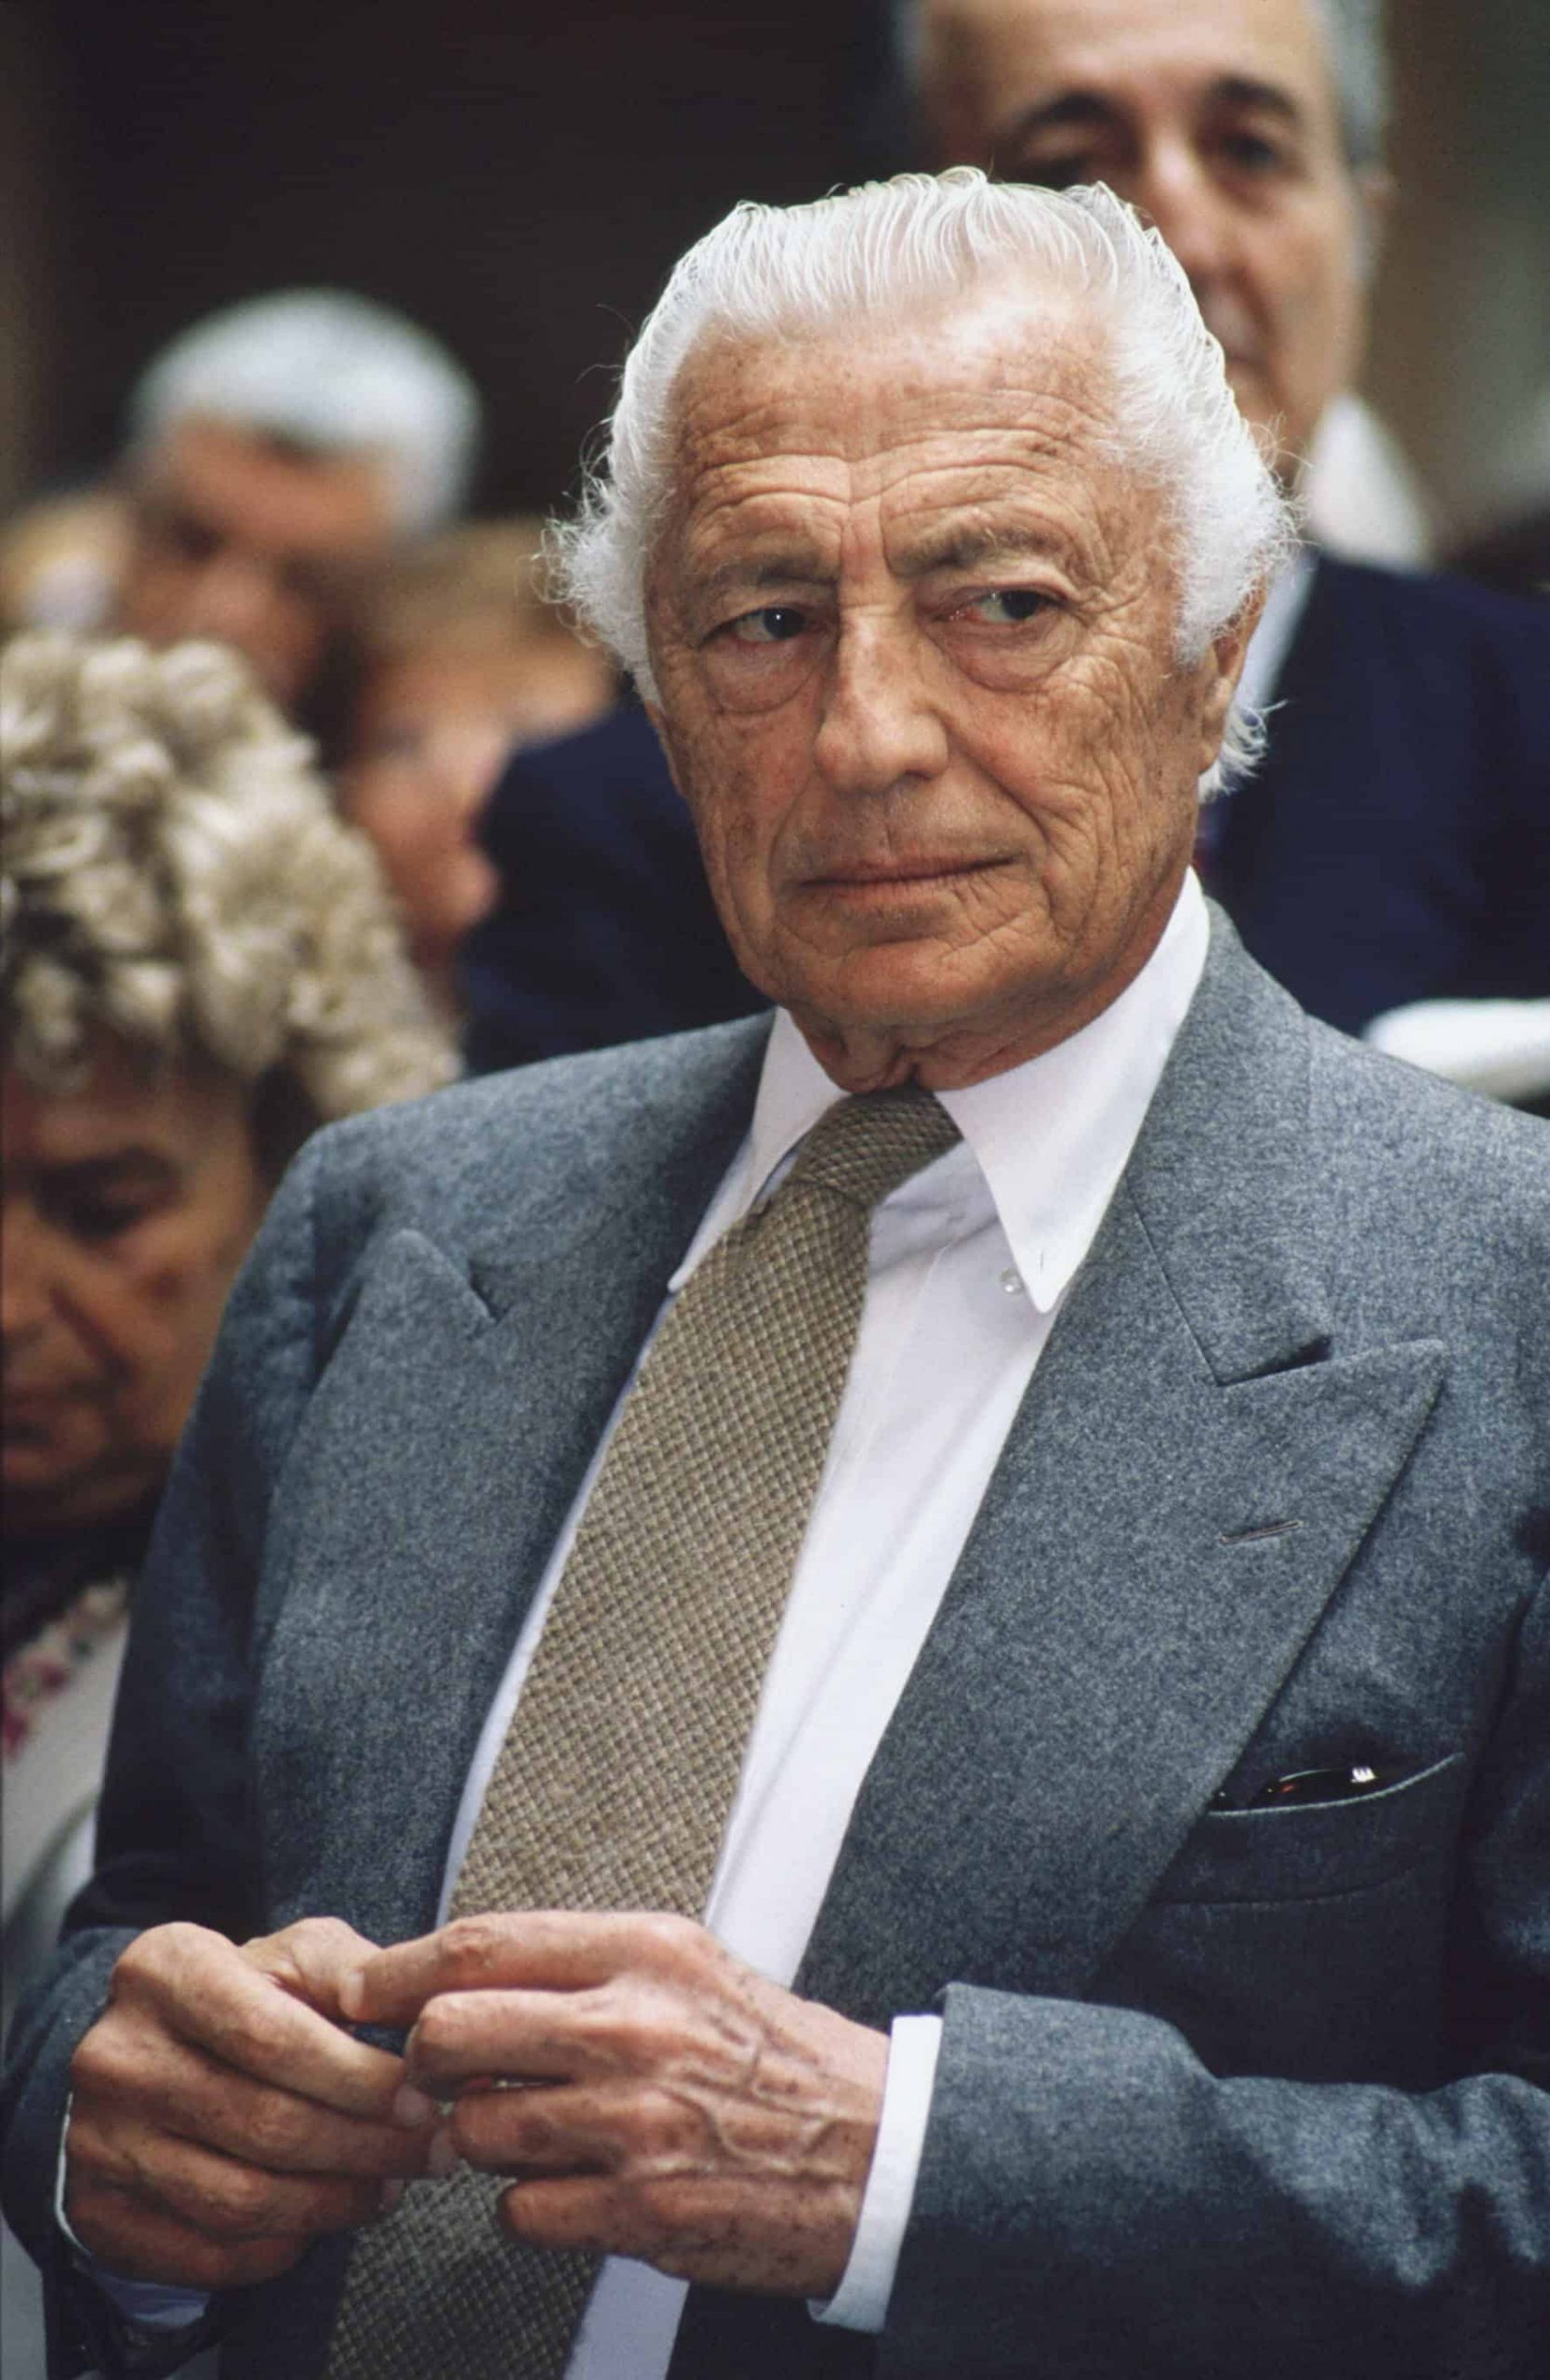 Gianni Agnelli in White OCBD Shirt and Grey Flannel Suit